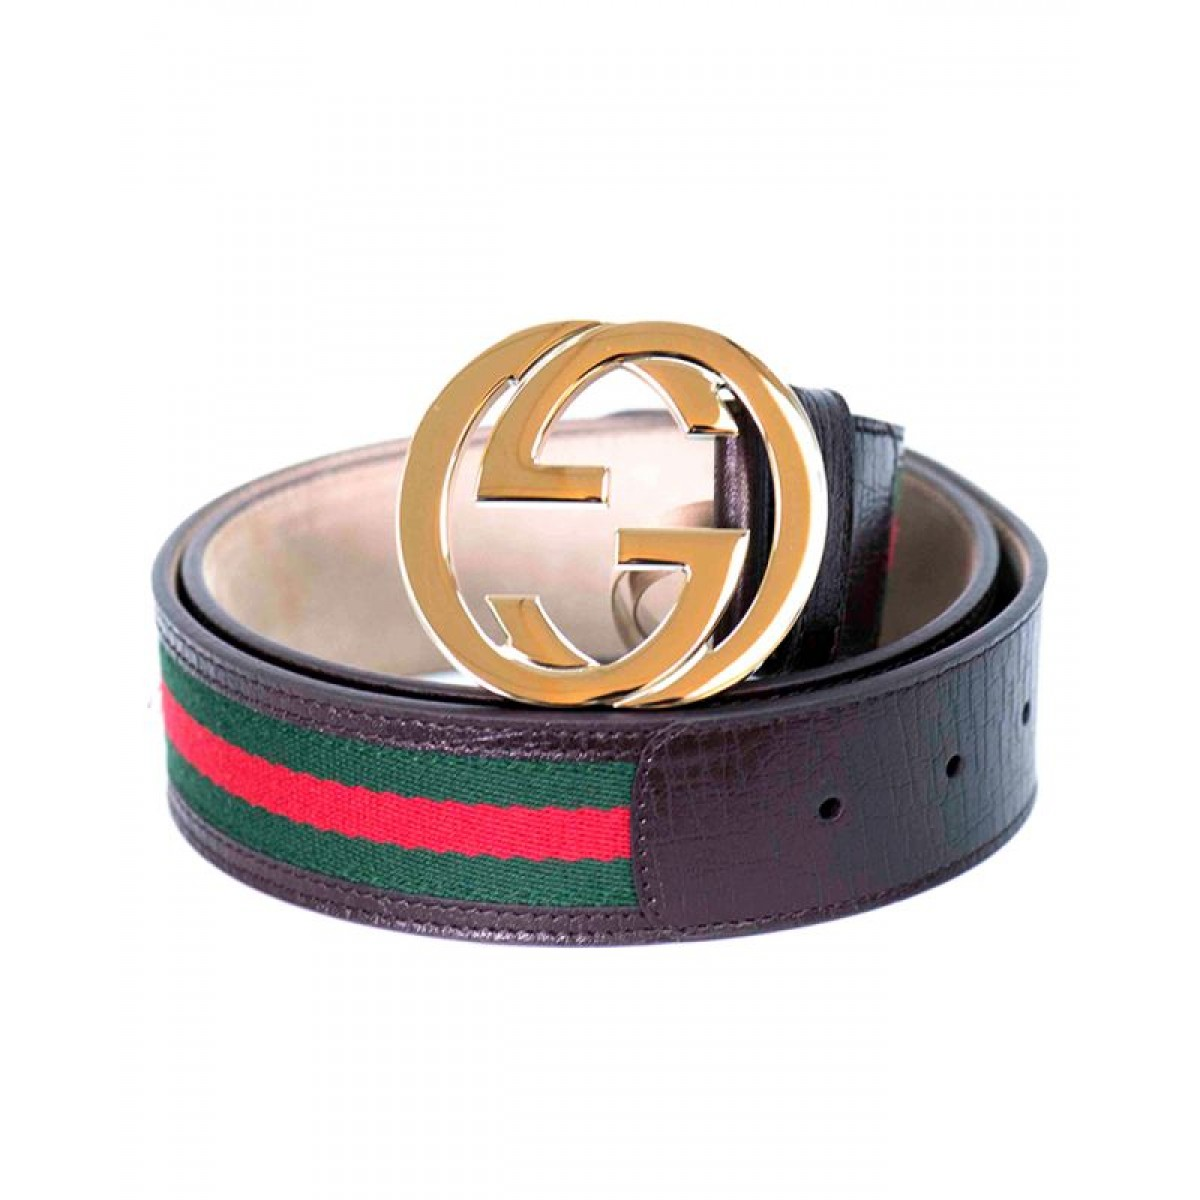 GUCCI BELT 114876 Green-red